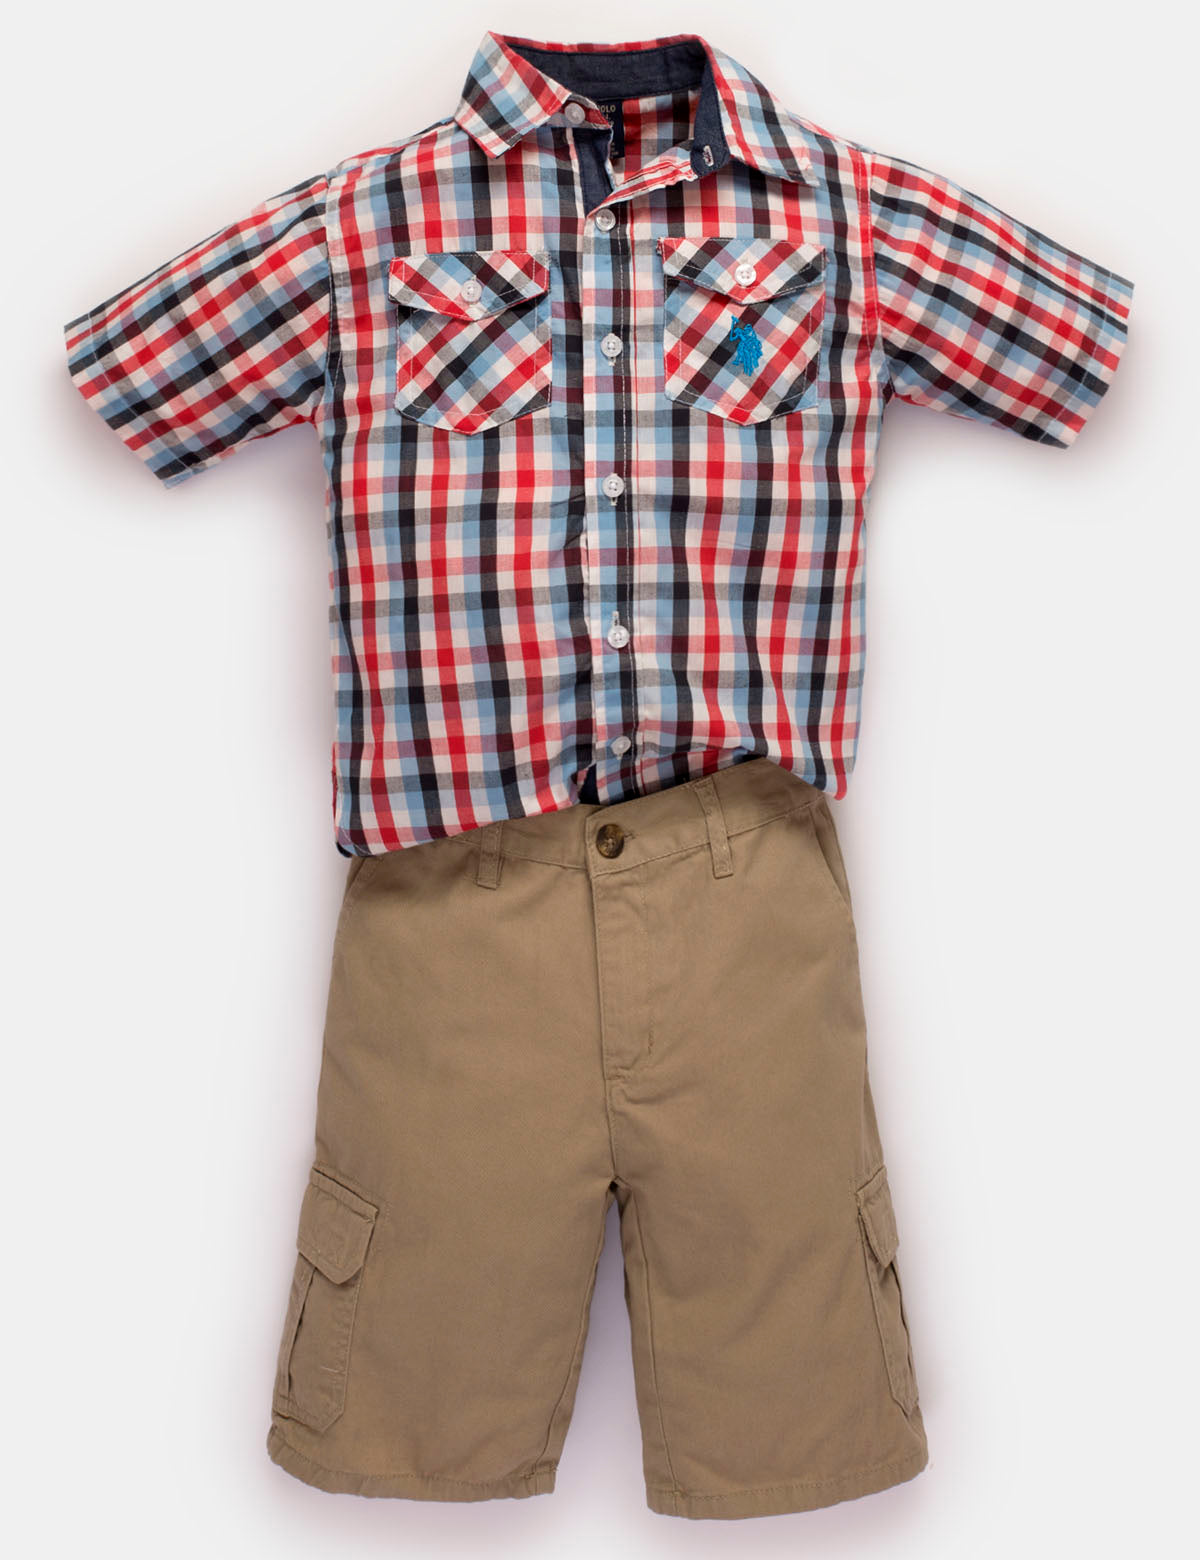 US Polo Assn Boys Woven Shirt 3pc Denim Pant Set Size 6 7 $54